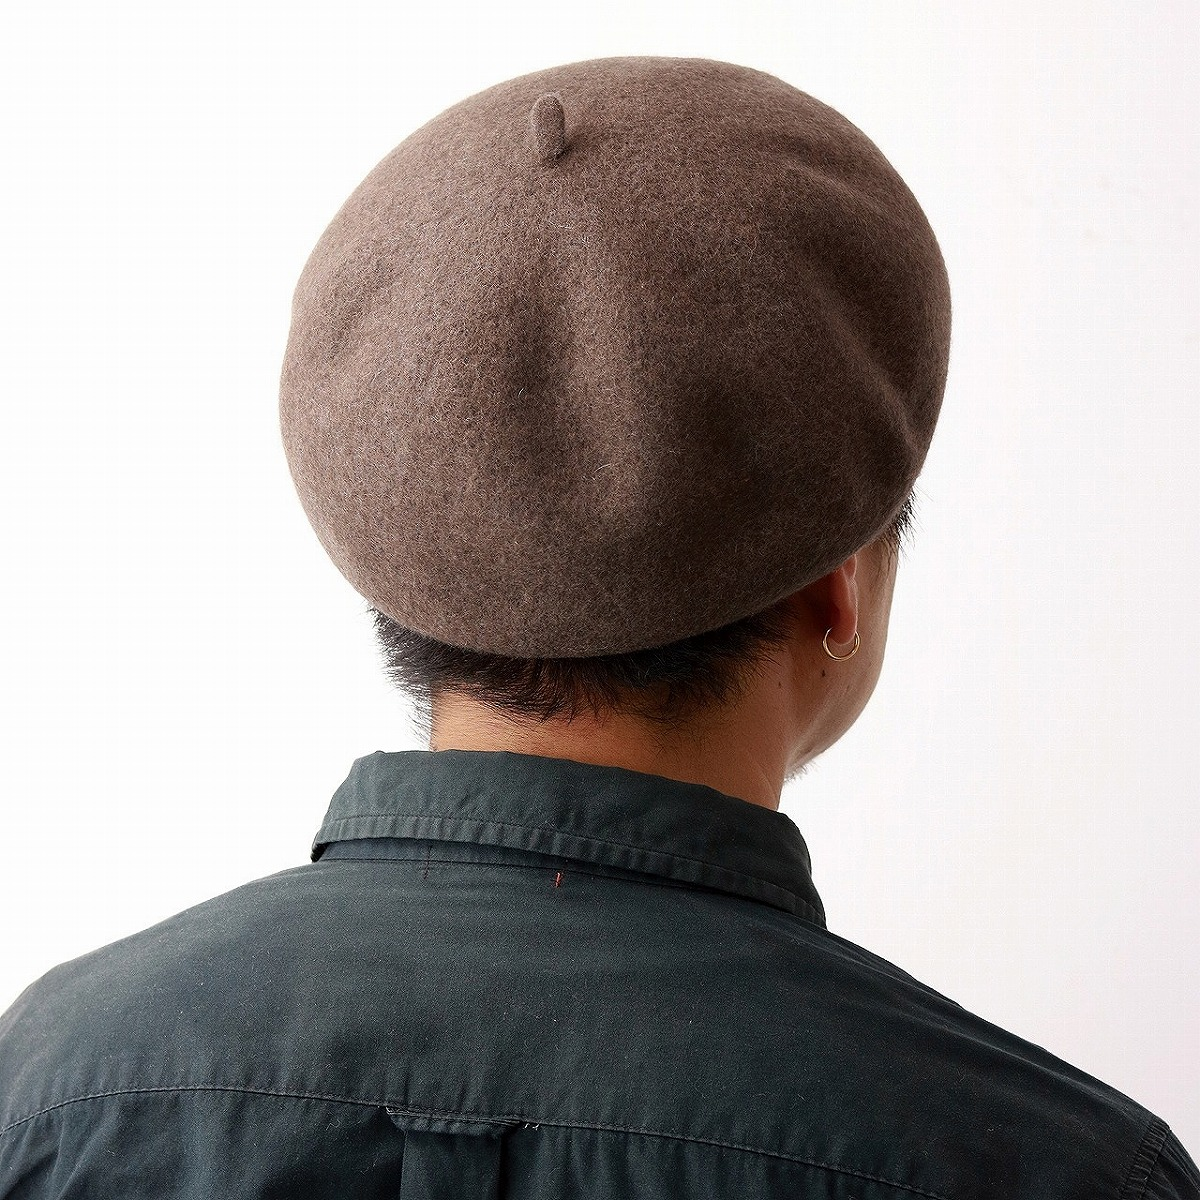 Mens Flat Caps For Small Heads 477f9407b